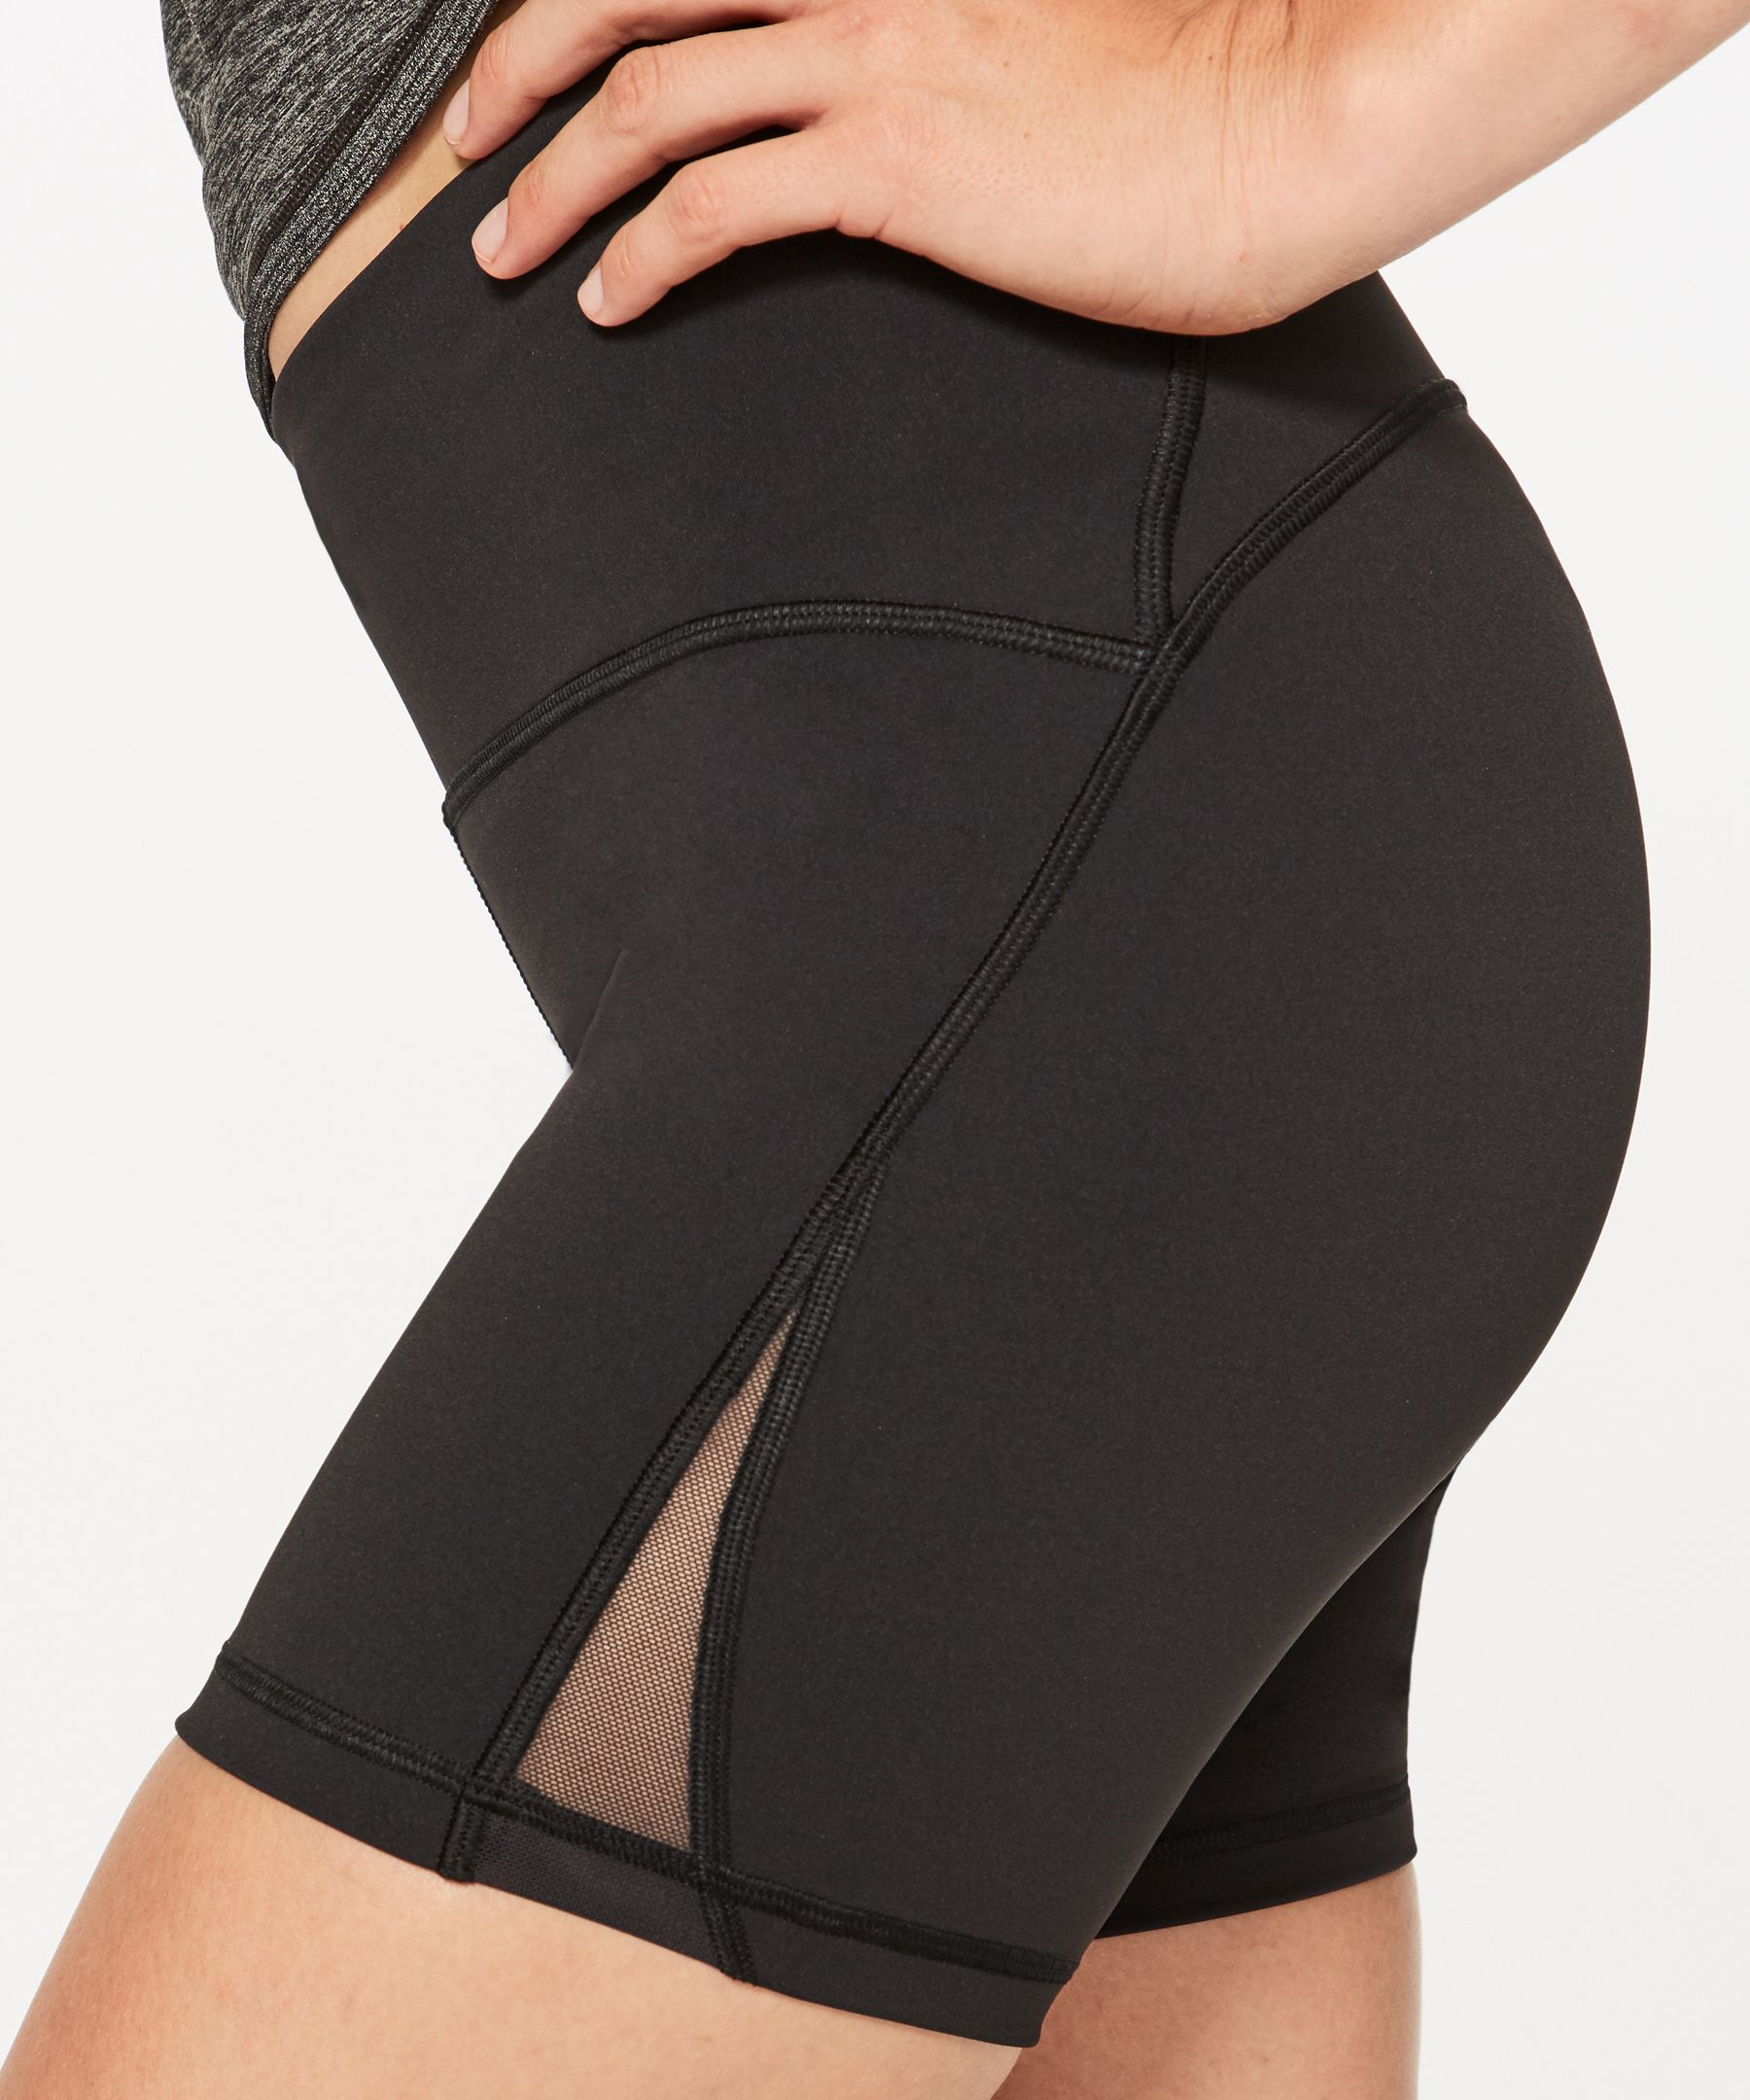 Train Times Short *6"